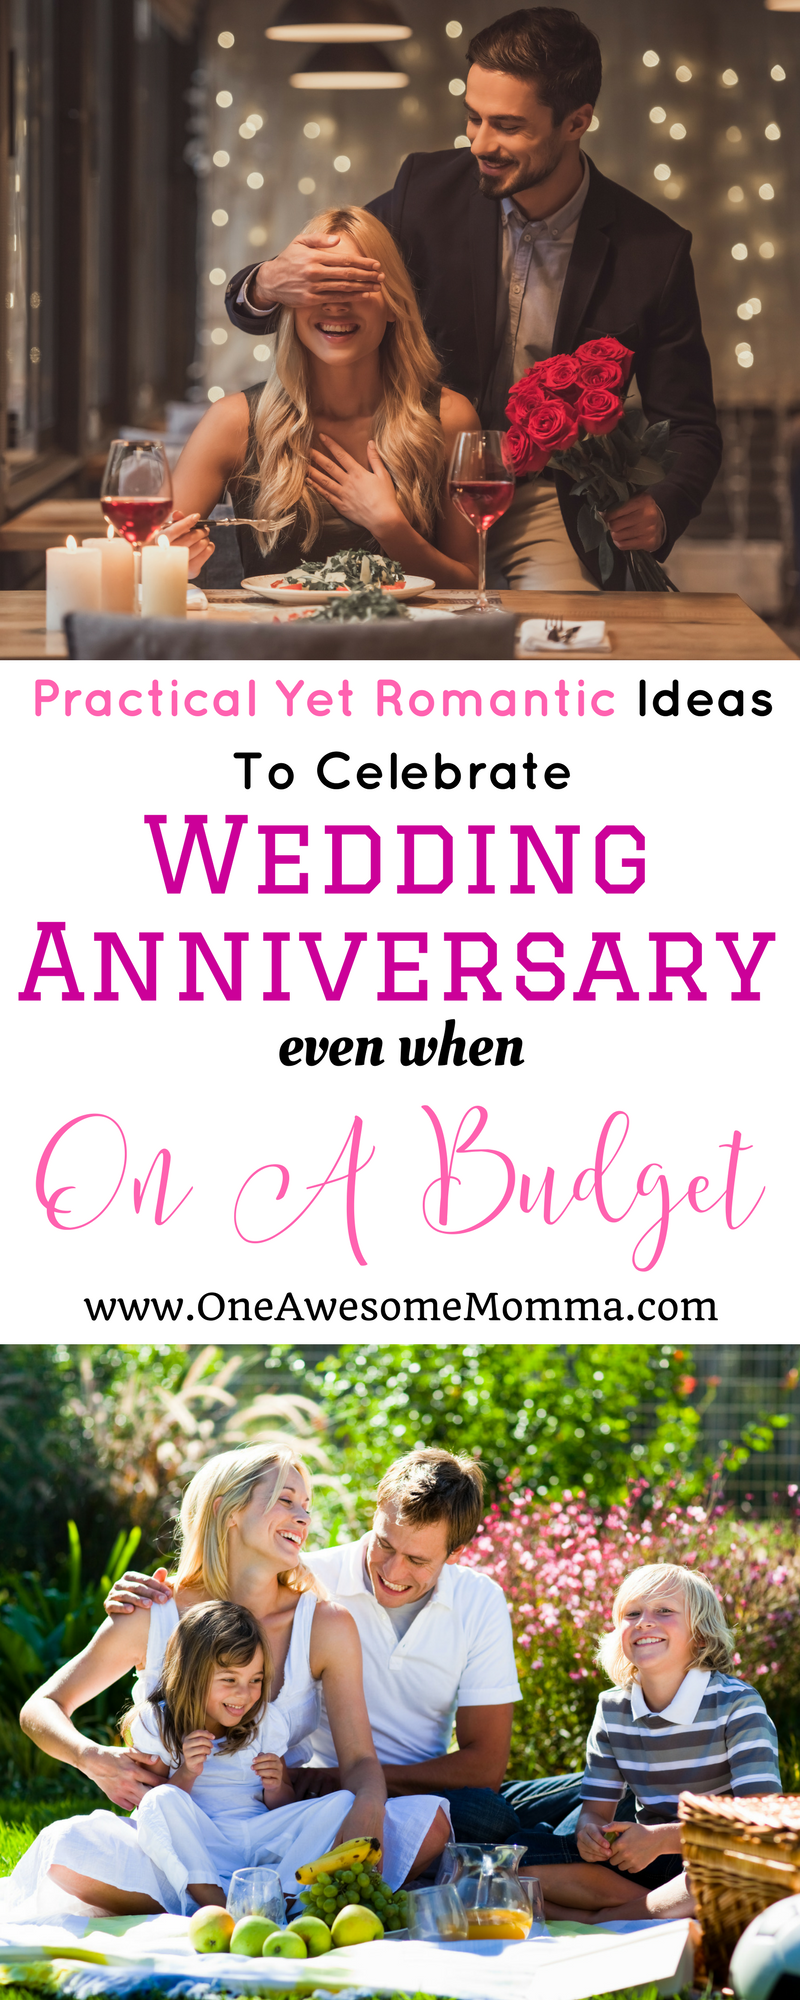 Celebrating Anniversaries Don T Need To Be Expensive You Just Have To Be Creative Here Are Prac Marriage Anniversary Wedding Anniversary Romantic Anniversary